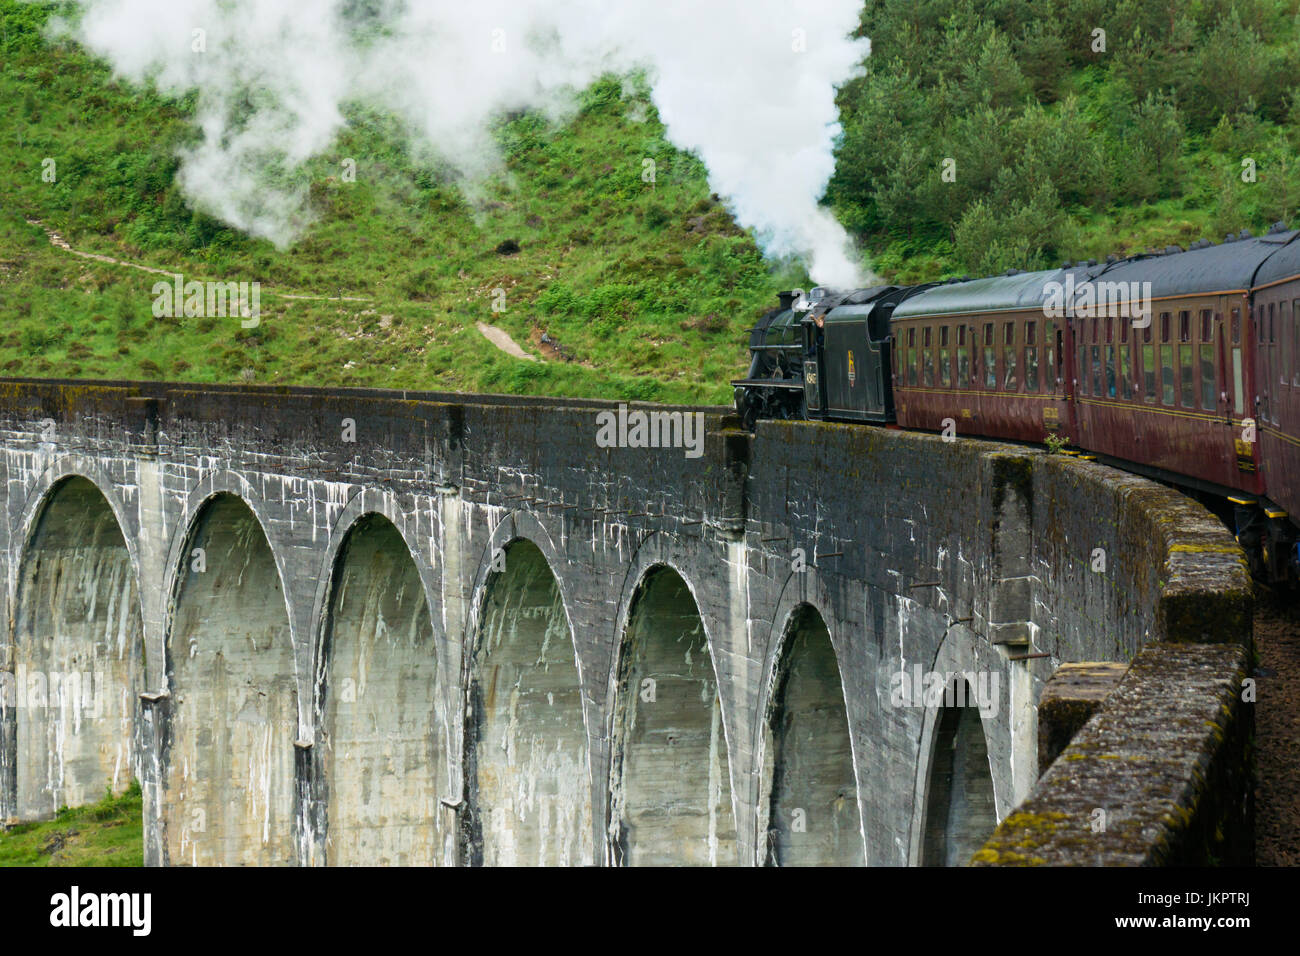 The Jacobite steam train on the Glenfinnan (Glenfinan) viaduct as seen in the harry potters movies. Viaduct in the - Stock Image